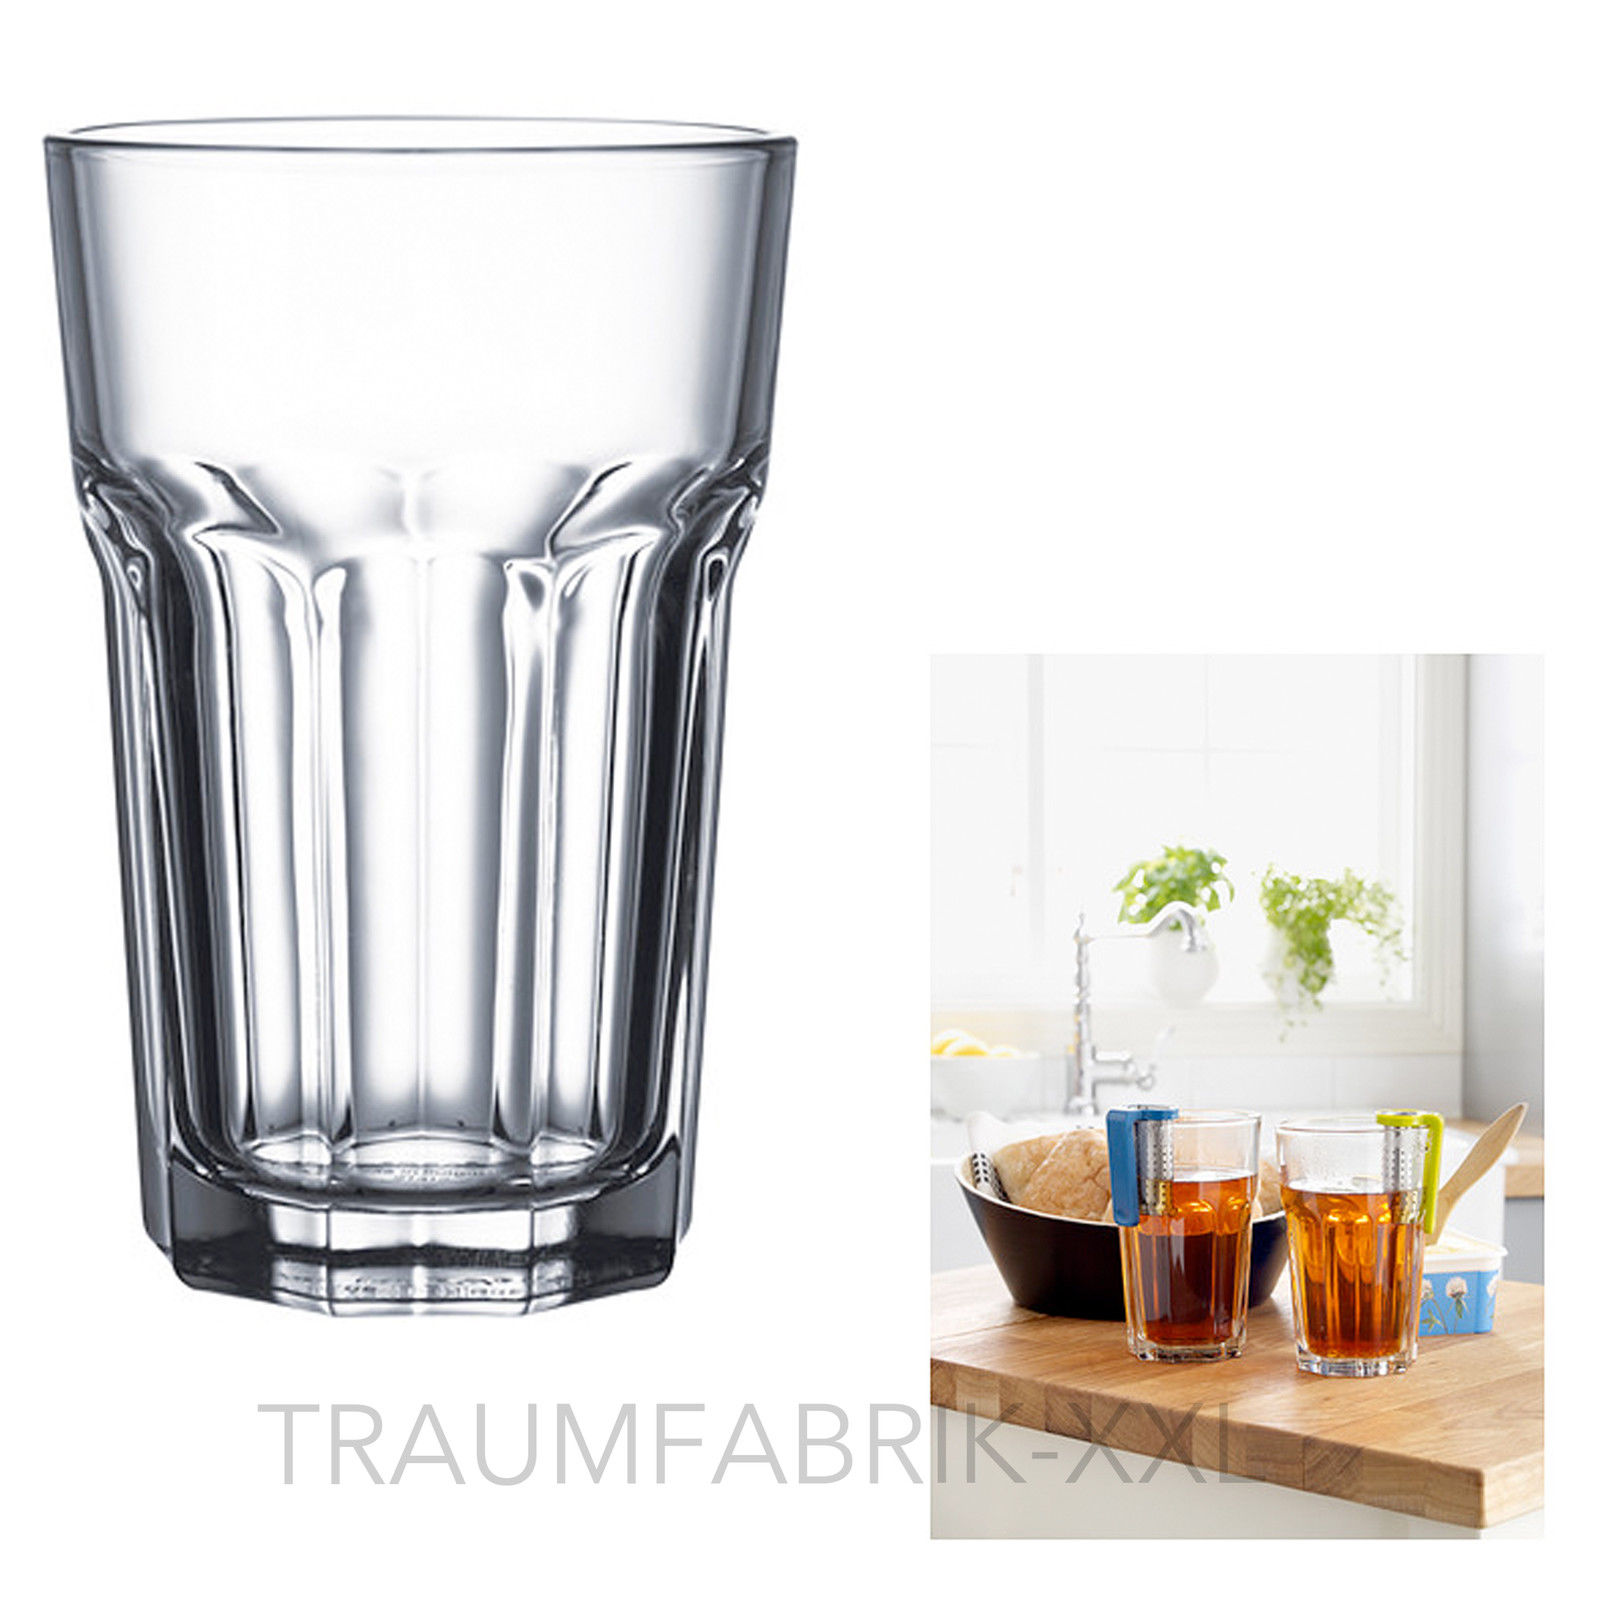 1 glas ikea 350ml saftgl ser cocktailgl ser wassergl ser trinkgl ser glas set traumfabrik xxl. Black Bedroom Furniture Sets. Home Design Ideas